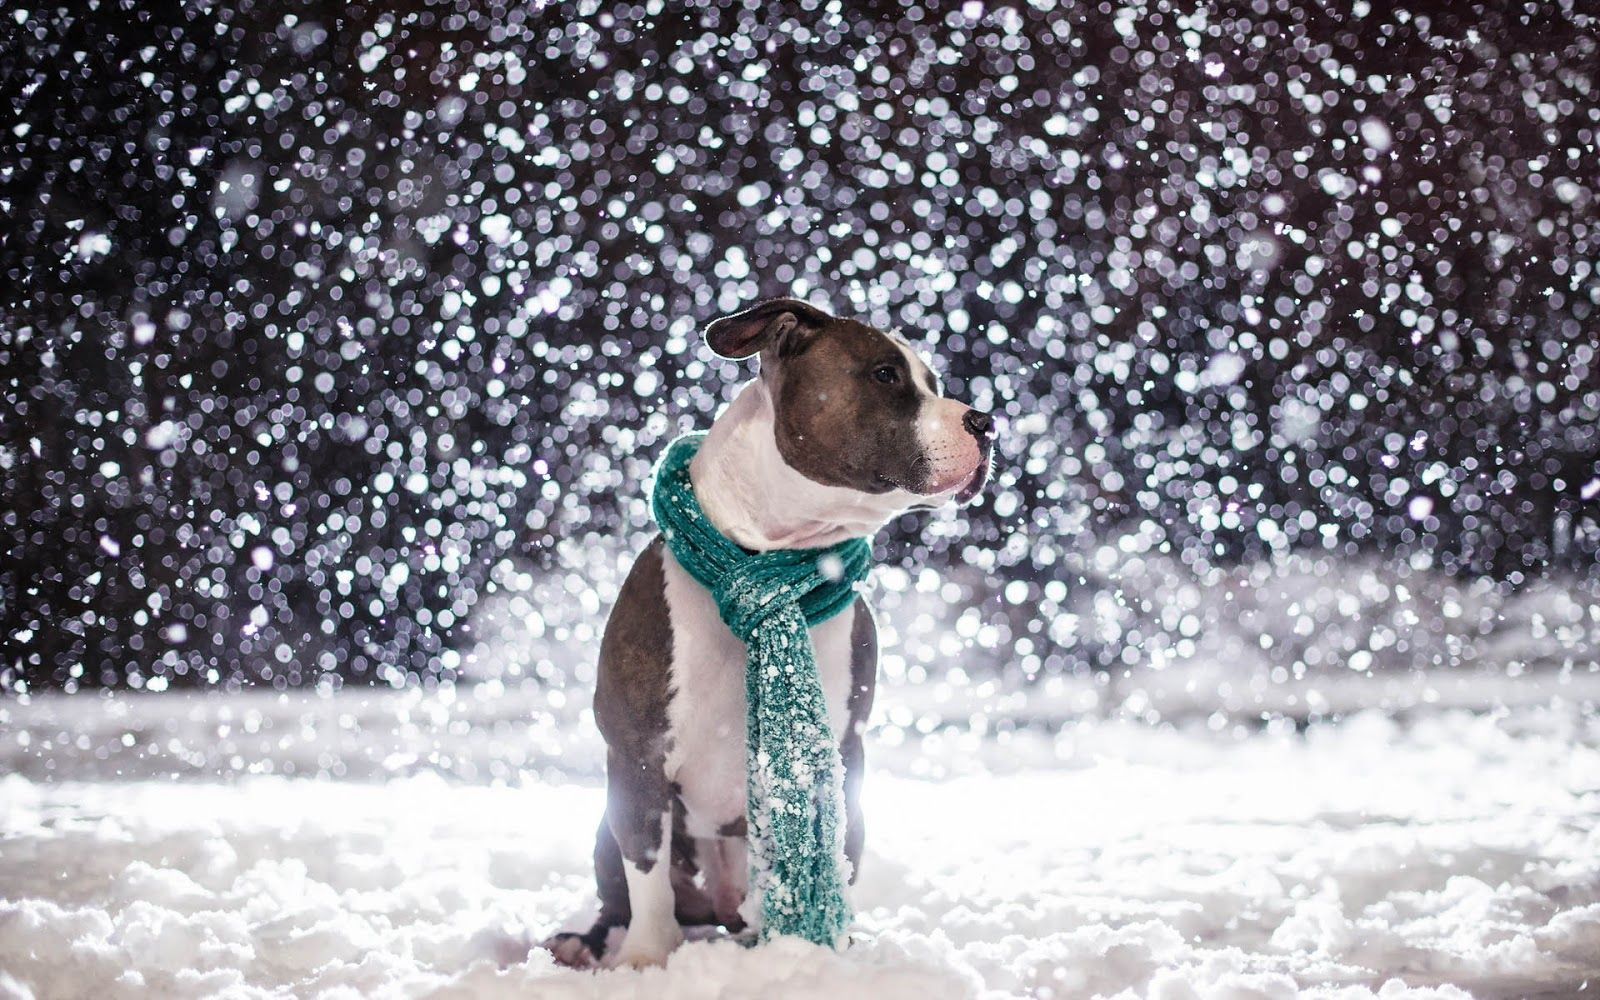 Animal Picture Pitbull Dog Sitting In Snow Hd Wallpaper Pitbull Dog Pitbulls Animal Pictures